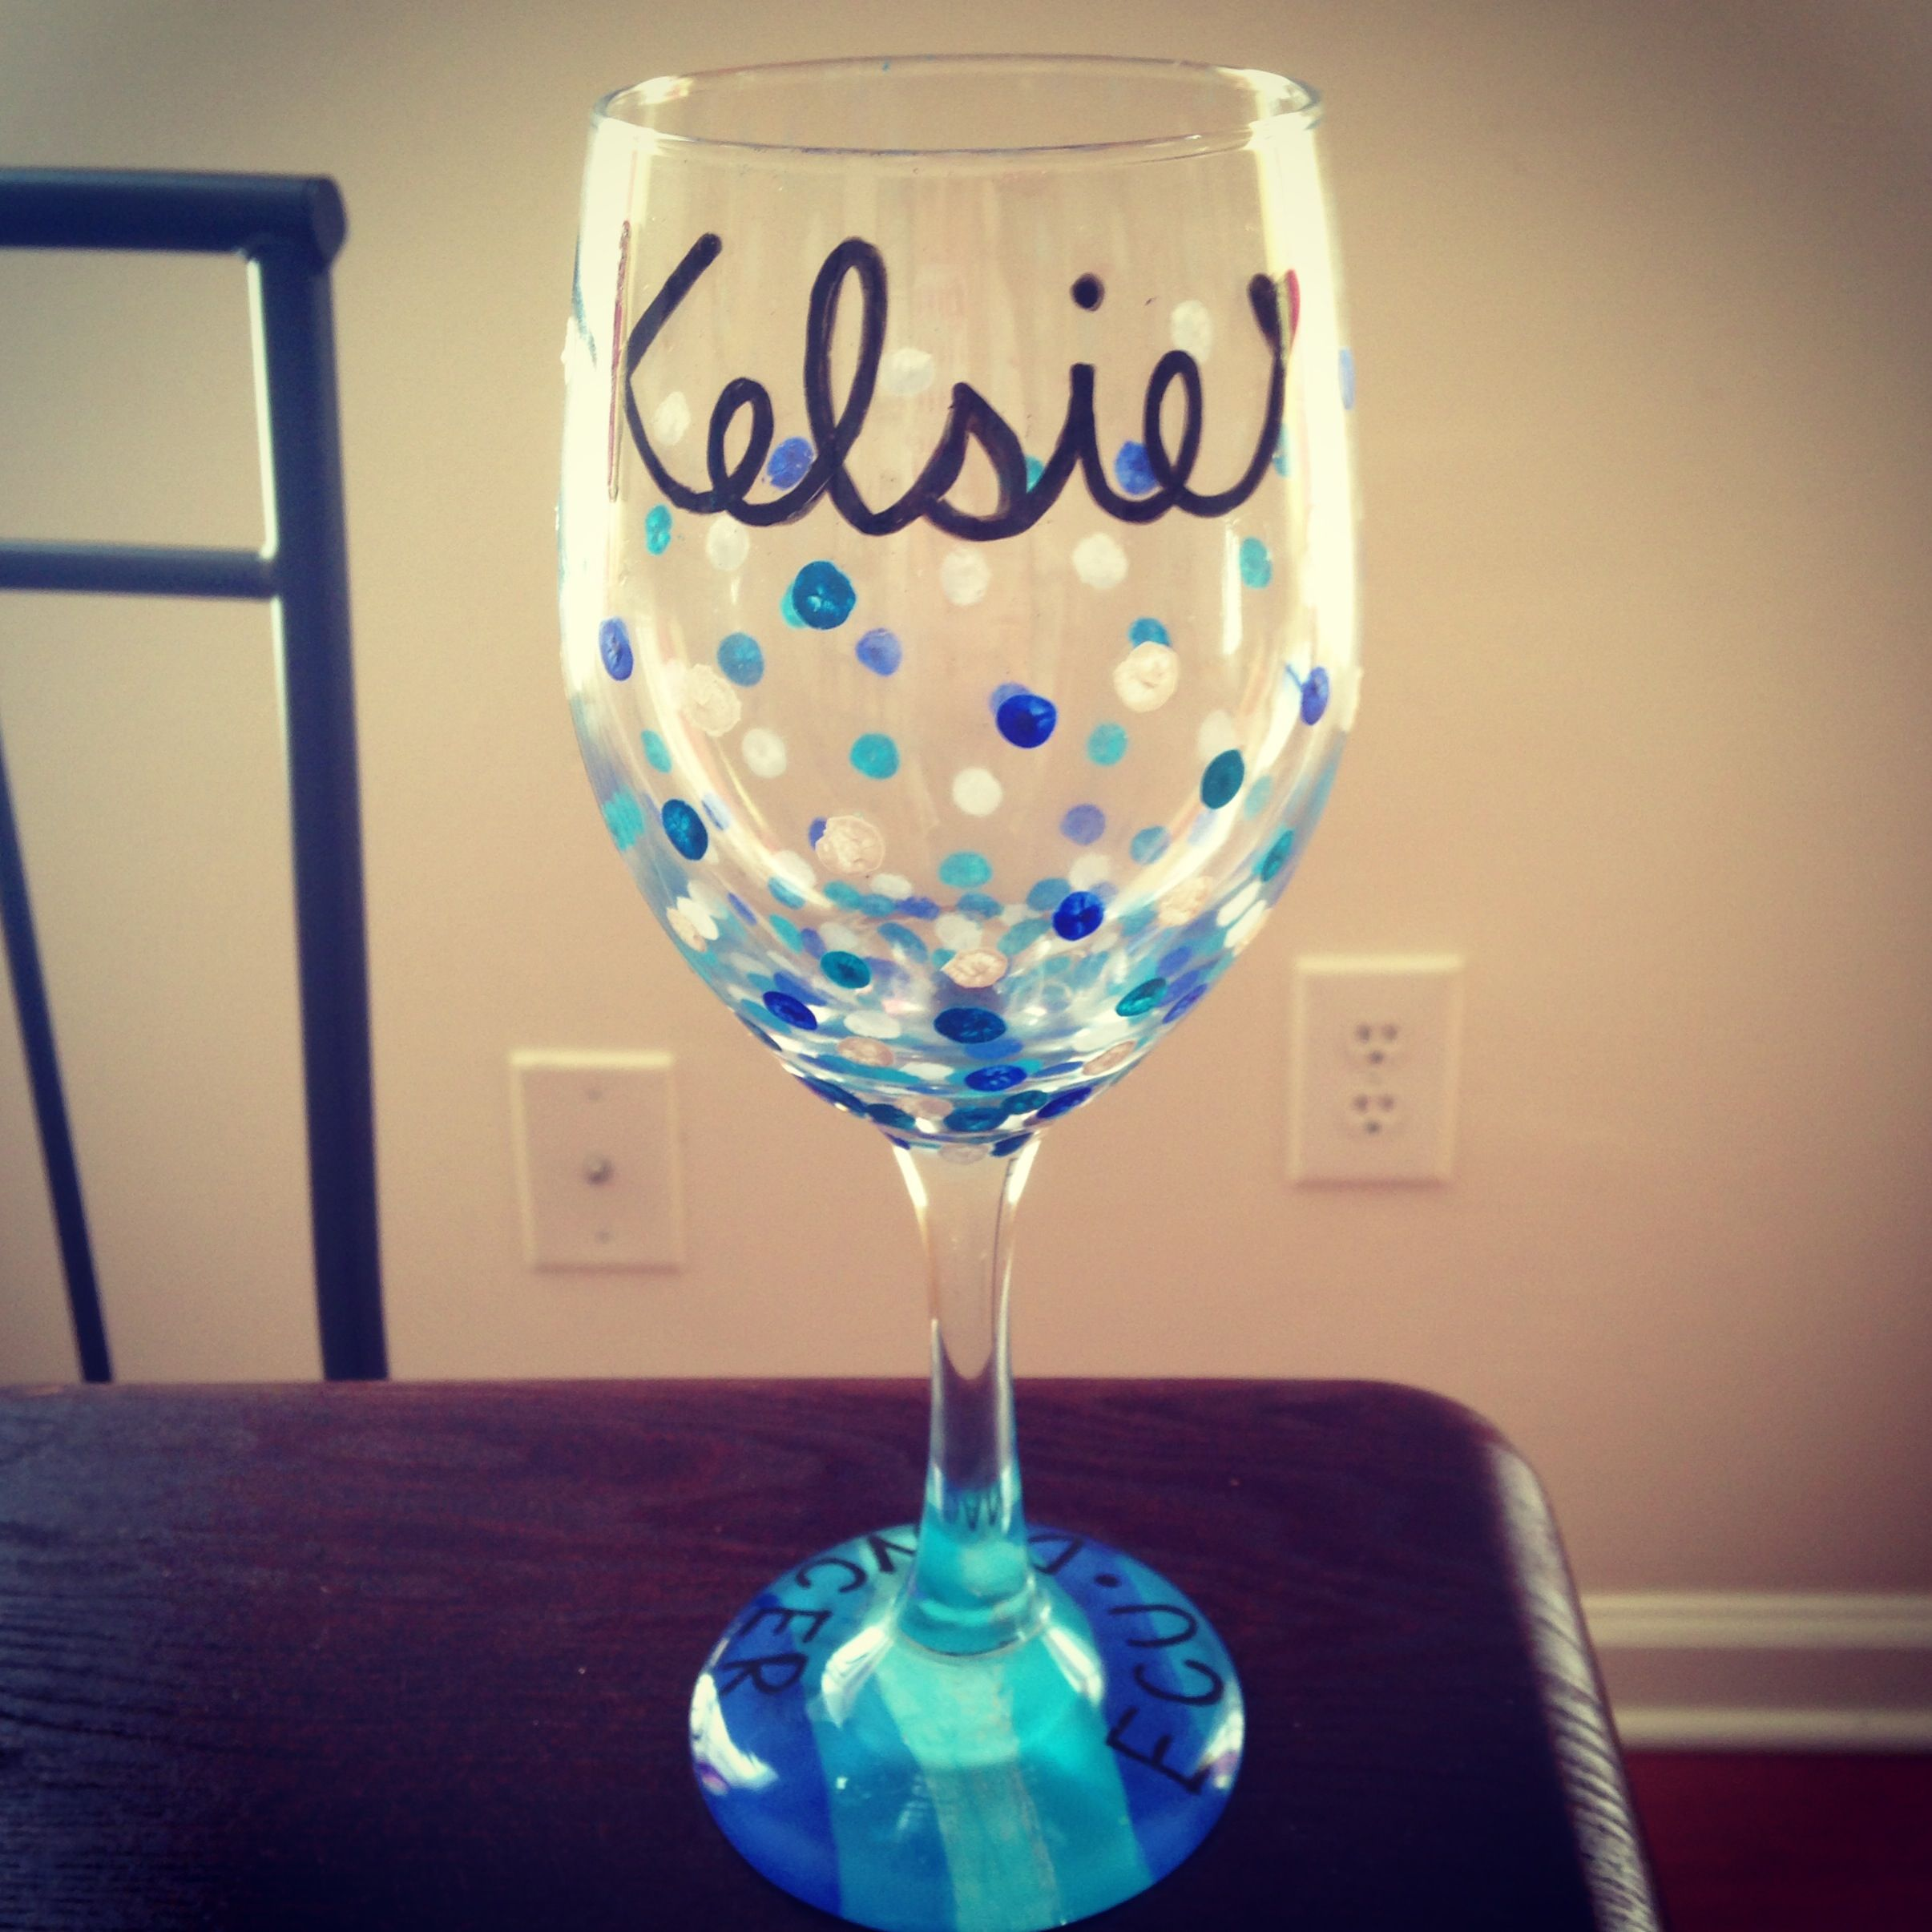 diy wine glass enamel paint put in cool oven bake at 350